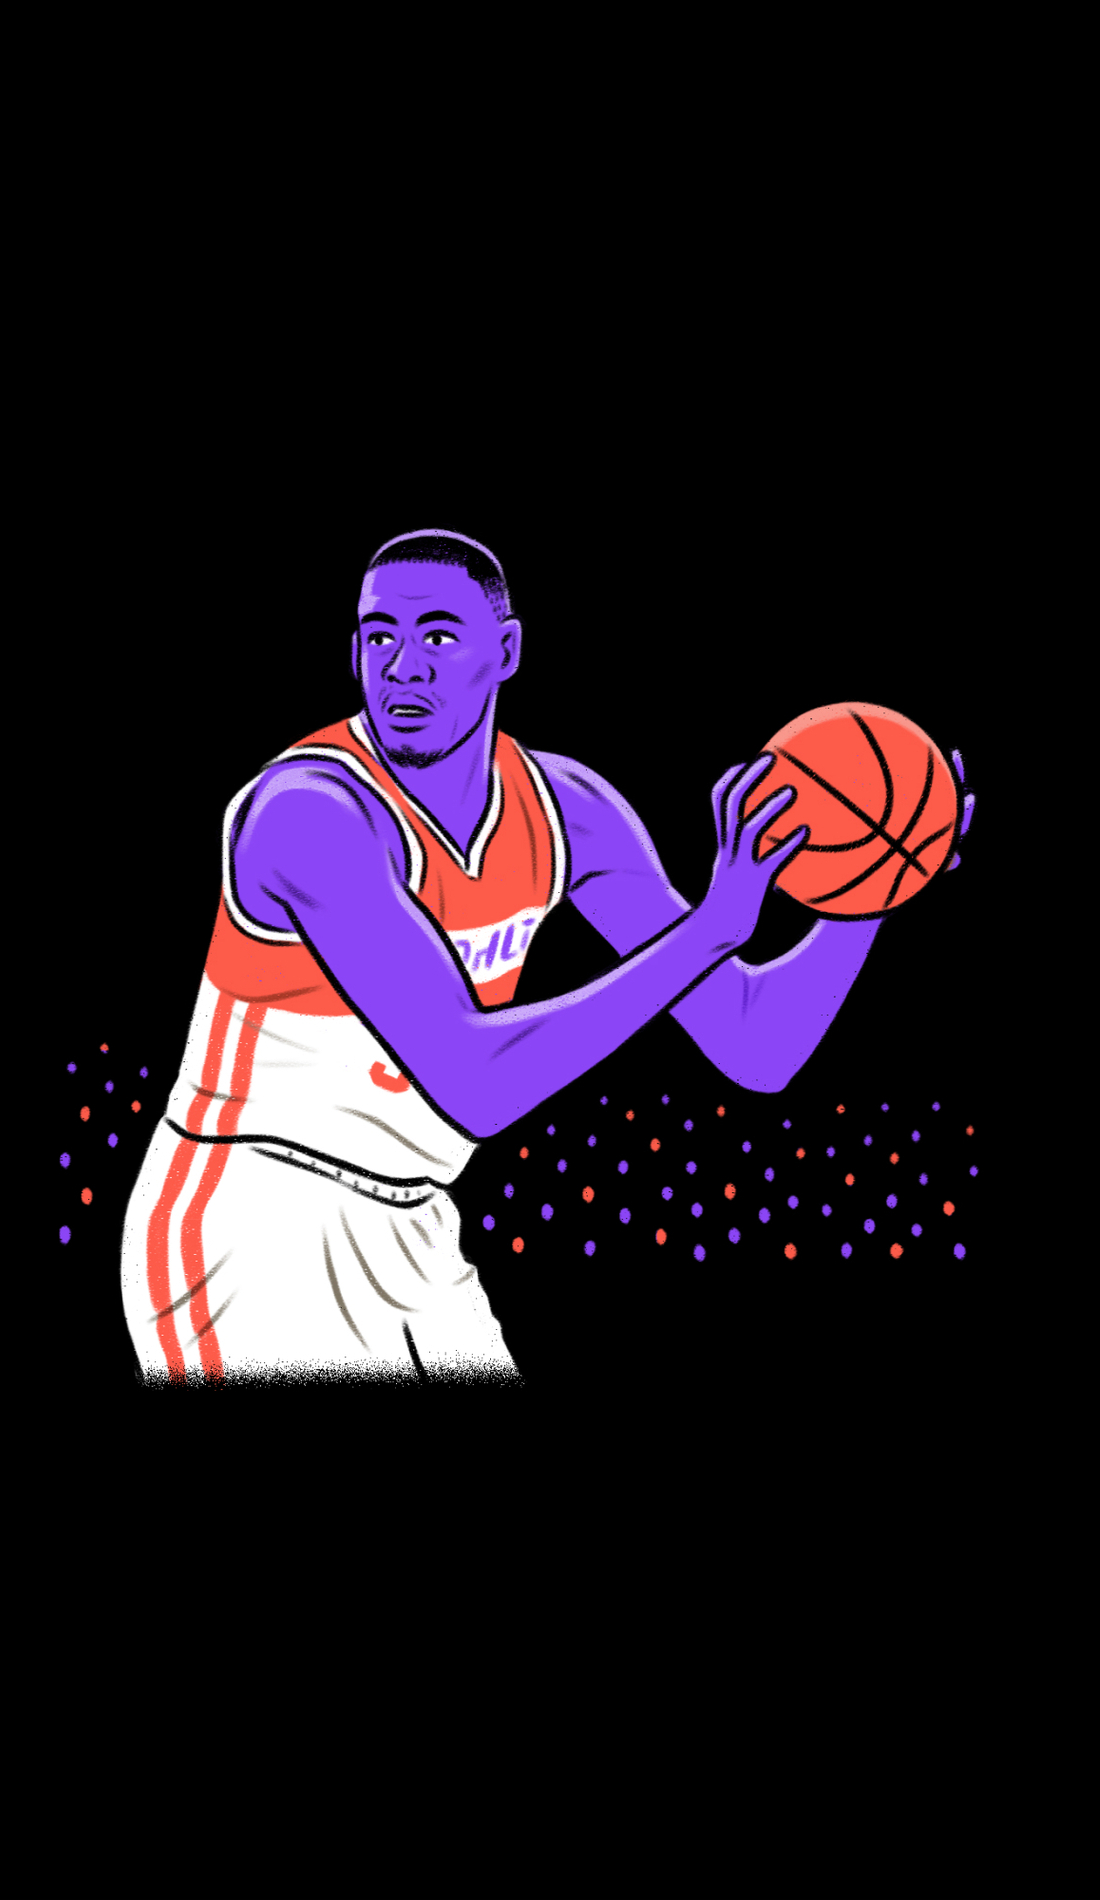 A Bowling Green Falcons Basketball live event